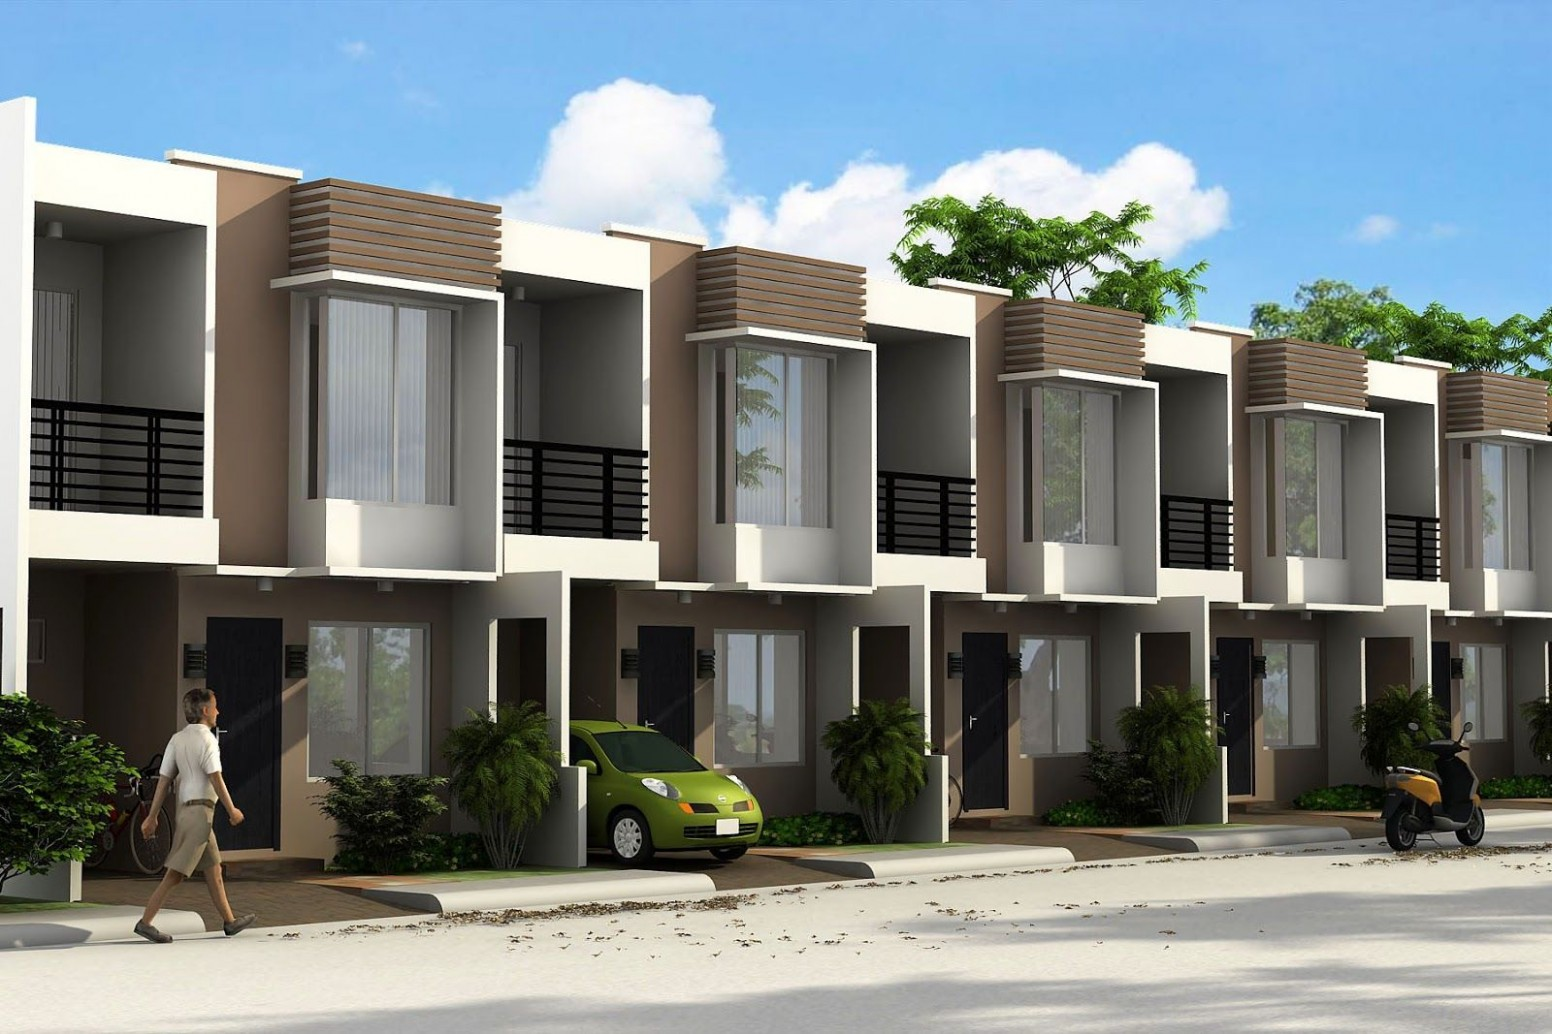 Apartment Design In Philippines in 8  Townhouse exterior, Row  - Apartment Design In Philippines